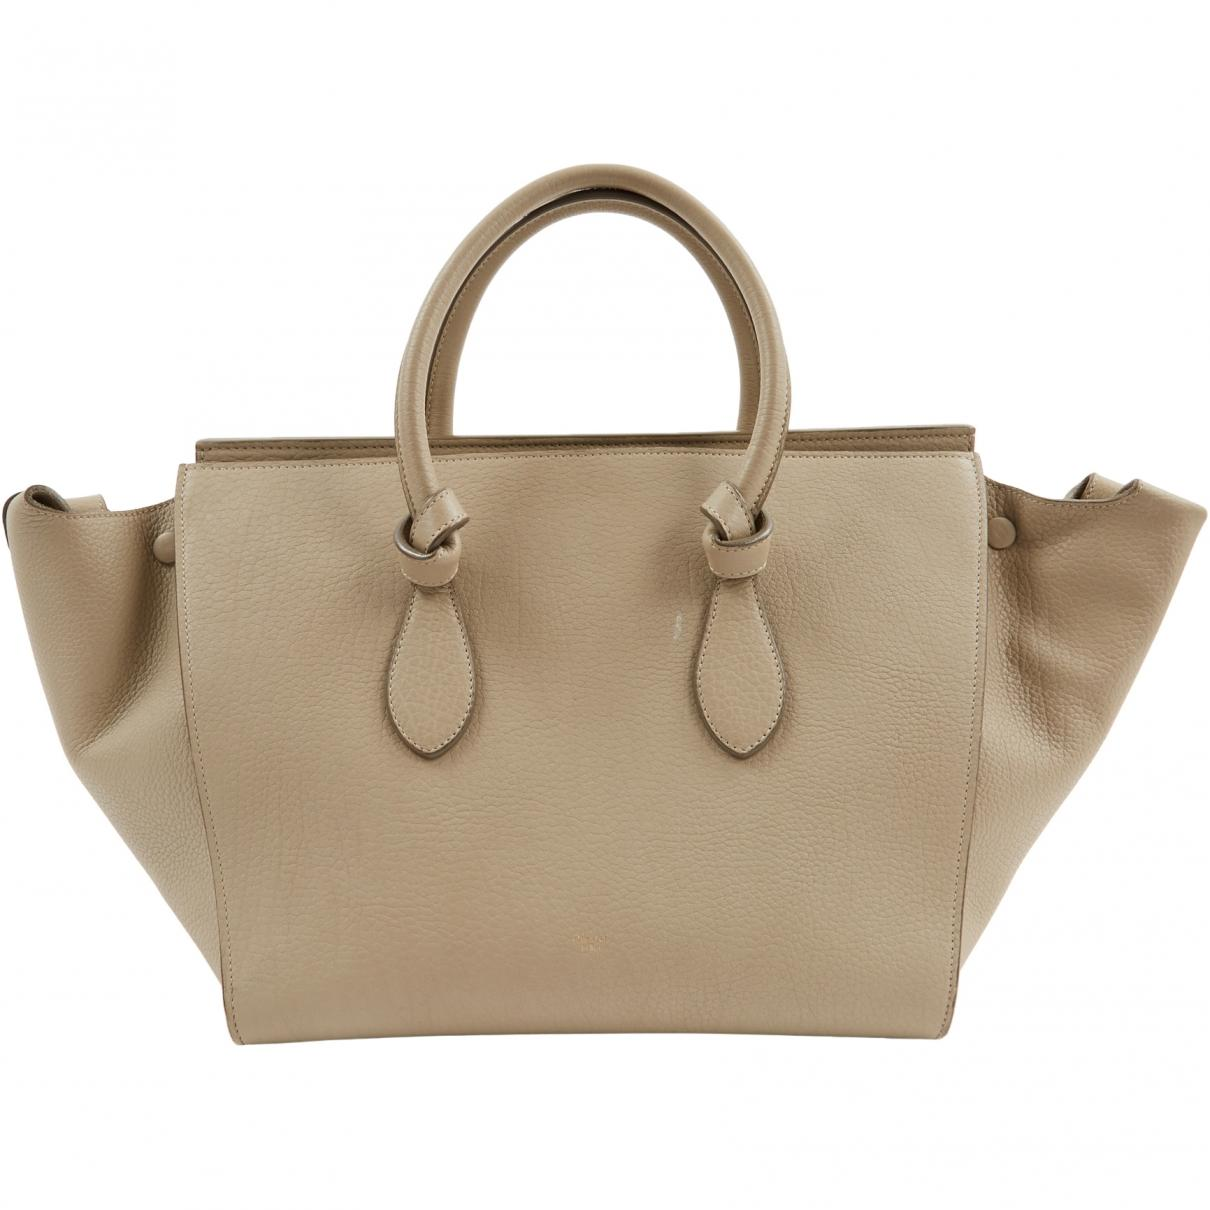 e783625170 Lyst - Céline Tie Beige Leather Handbag in Natural